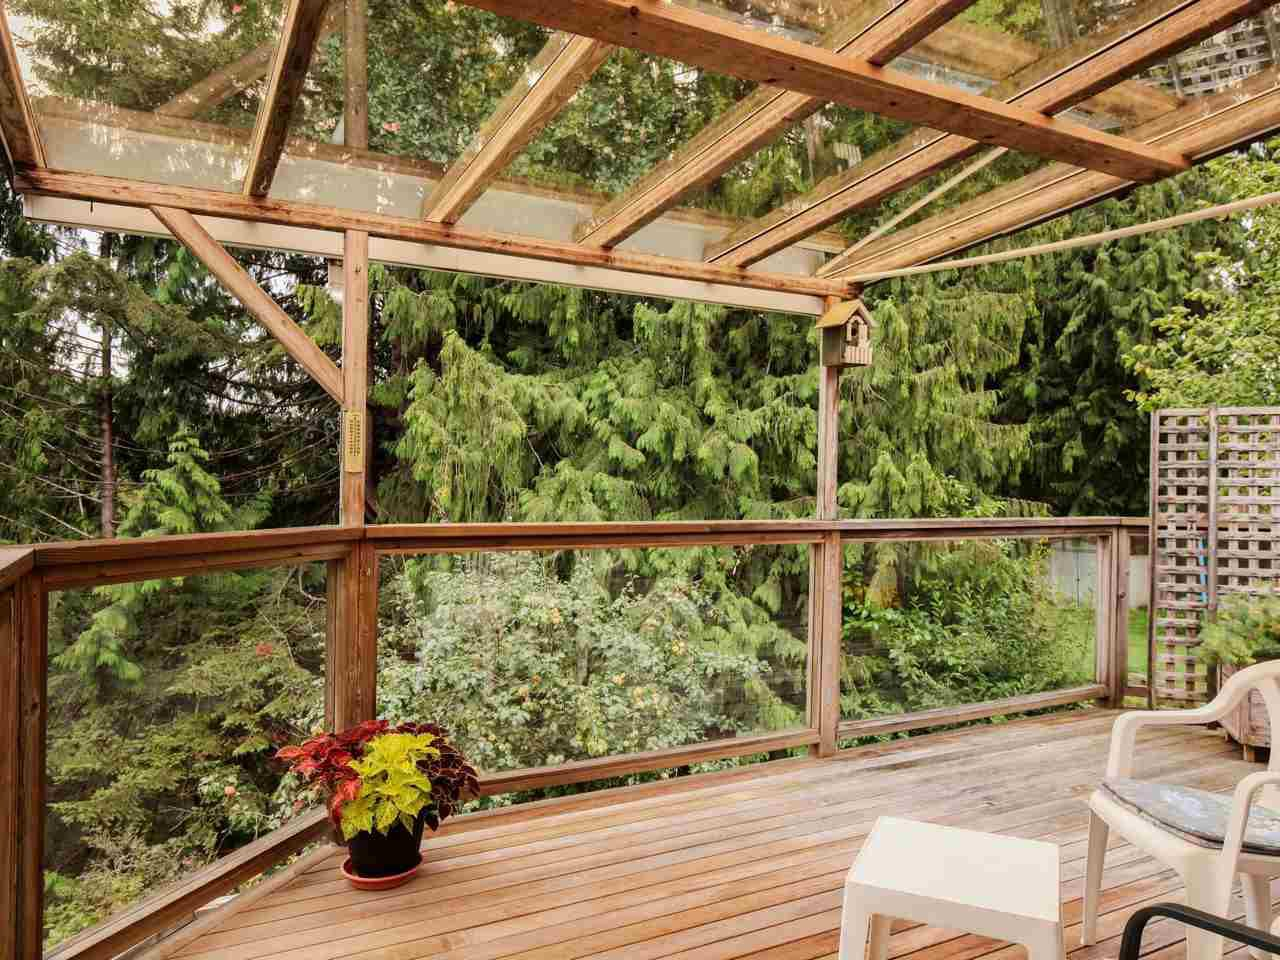 Photo 14: Photos: 4120 LYNN VALLEY ROAD in North Vancouver: Lynn Valley House for sale : MLS®# R2100168